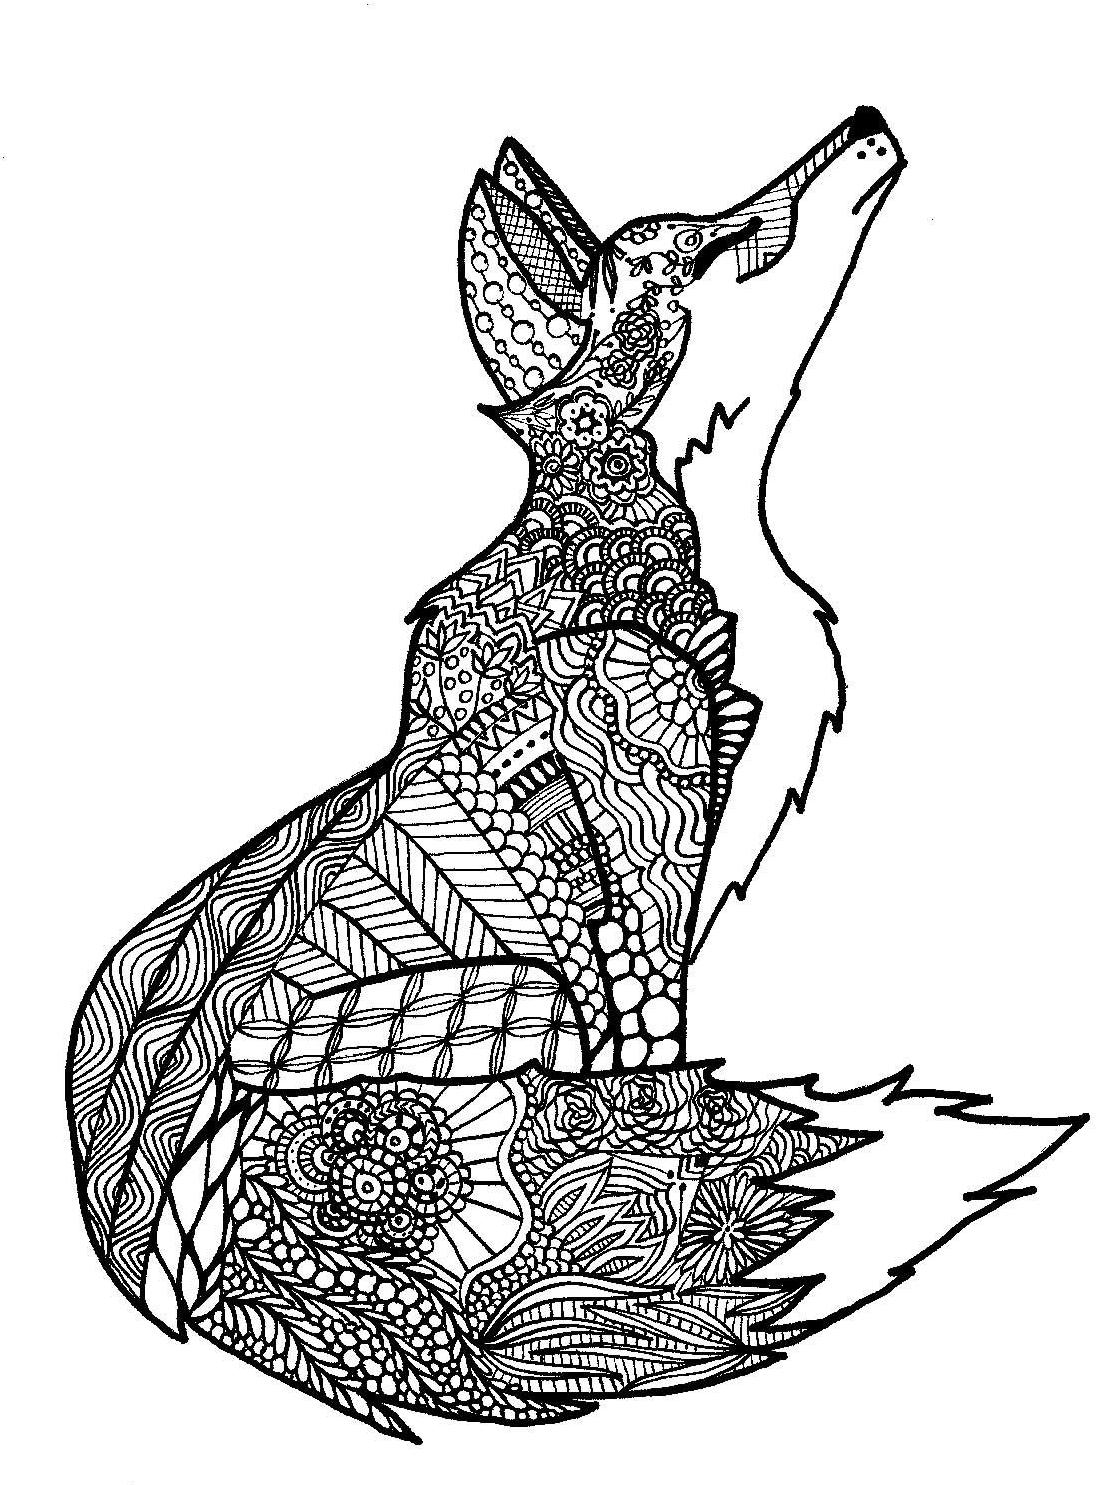 th?id=OIP.nDNjyAtVFOEB cG7E8EpFwDgEs&pid=15.1 along with  plicated horse coloring pages 1 on complicated horse coloring pages additionally zentangle coloring pages koala on complicated horse coloring pages also with unicorn coloring pages on complicated horse coloring pages also  plicated horse coloring pages 4 on complicated horse coloring pages